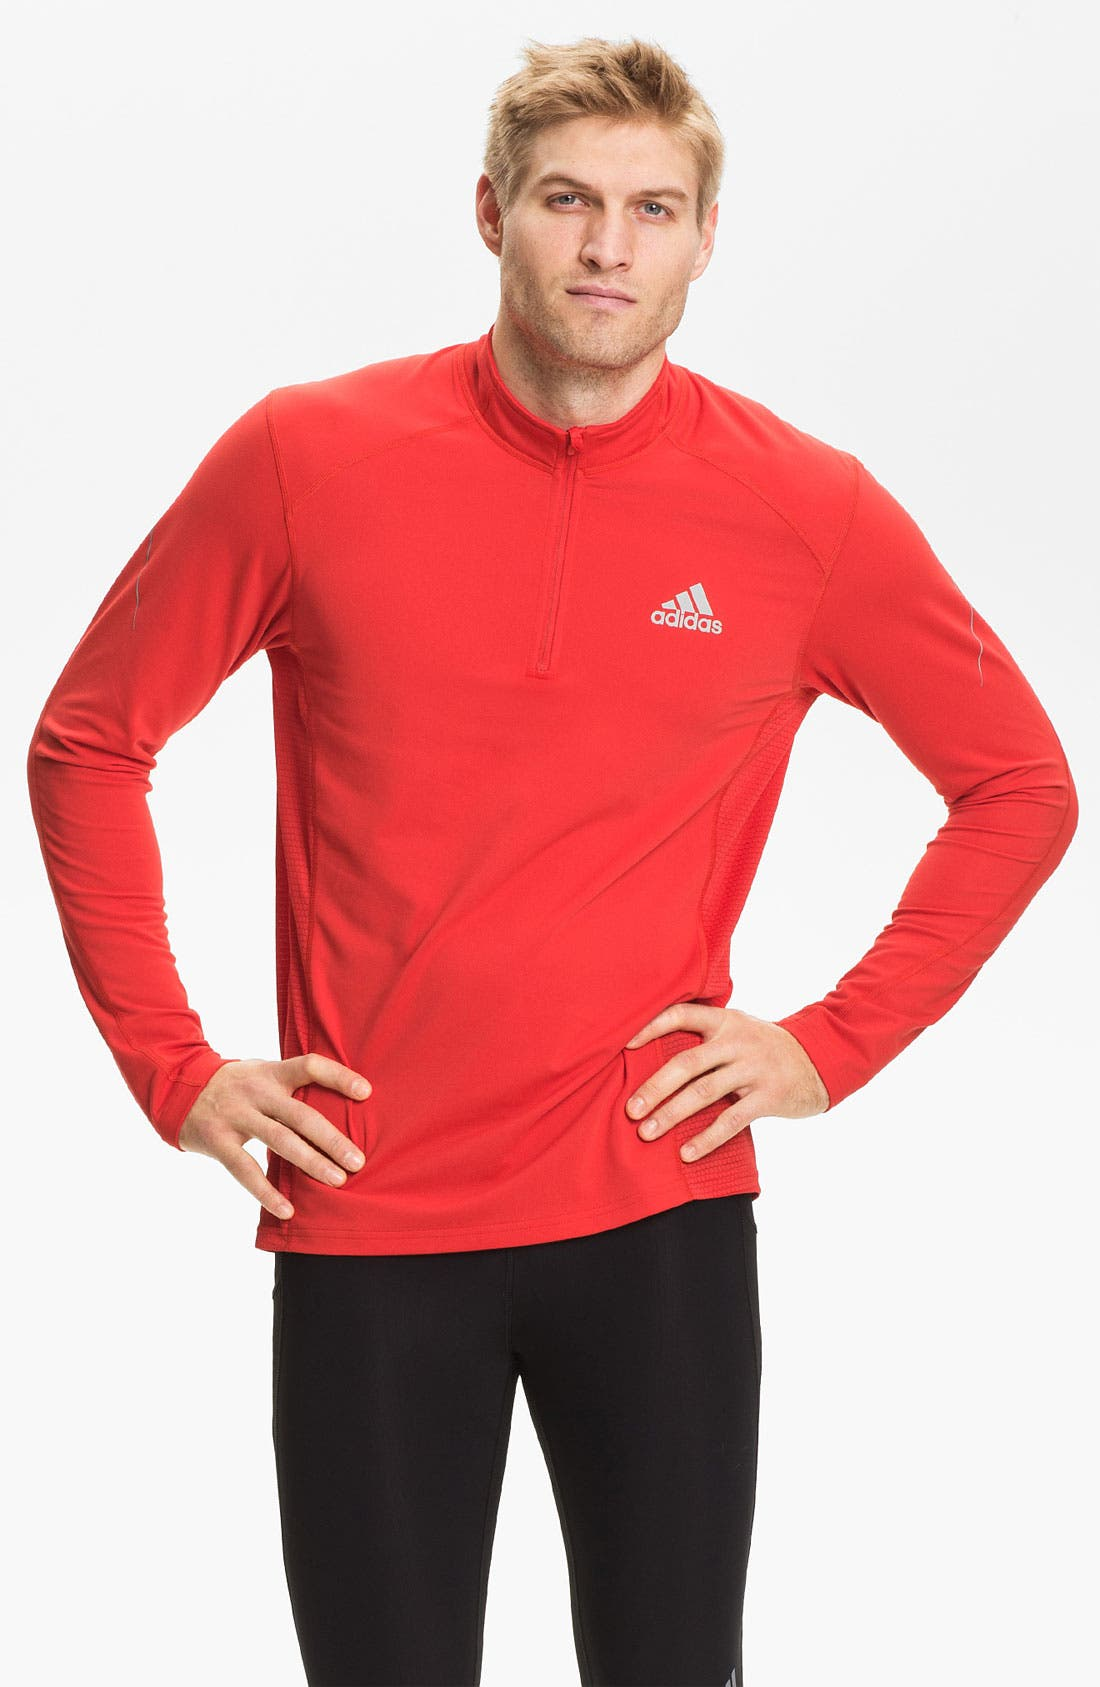 Alternate Image 1 Selected - adidas 'Sequencials' Half-Zip Top